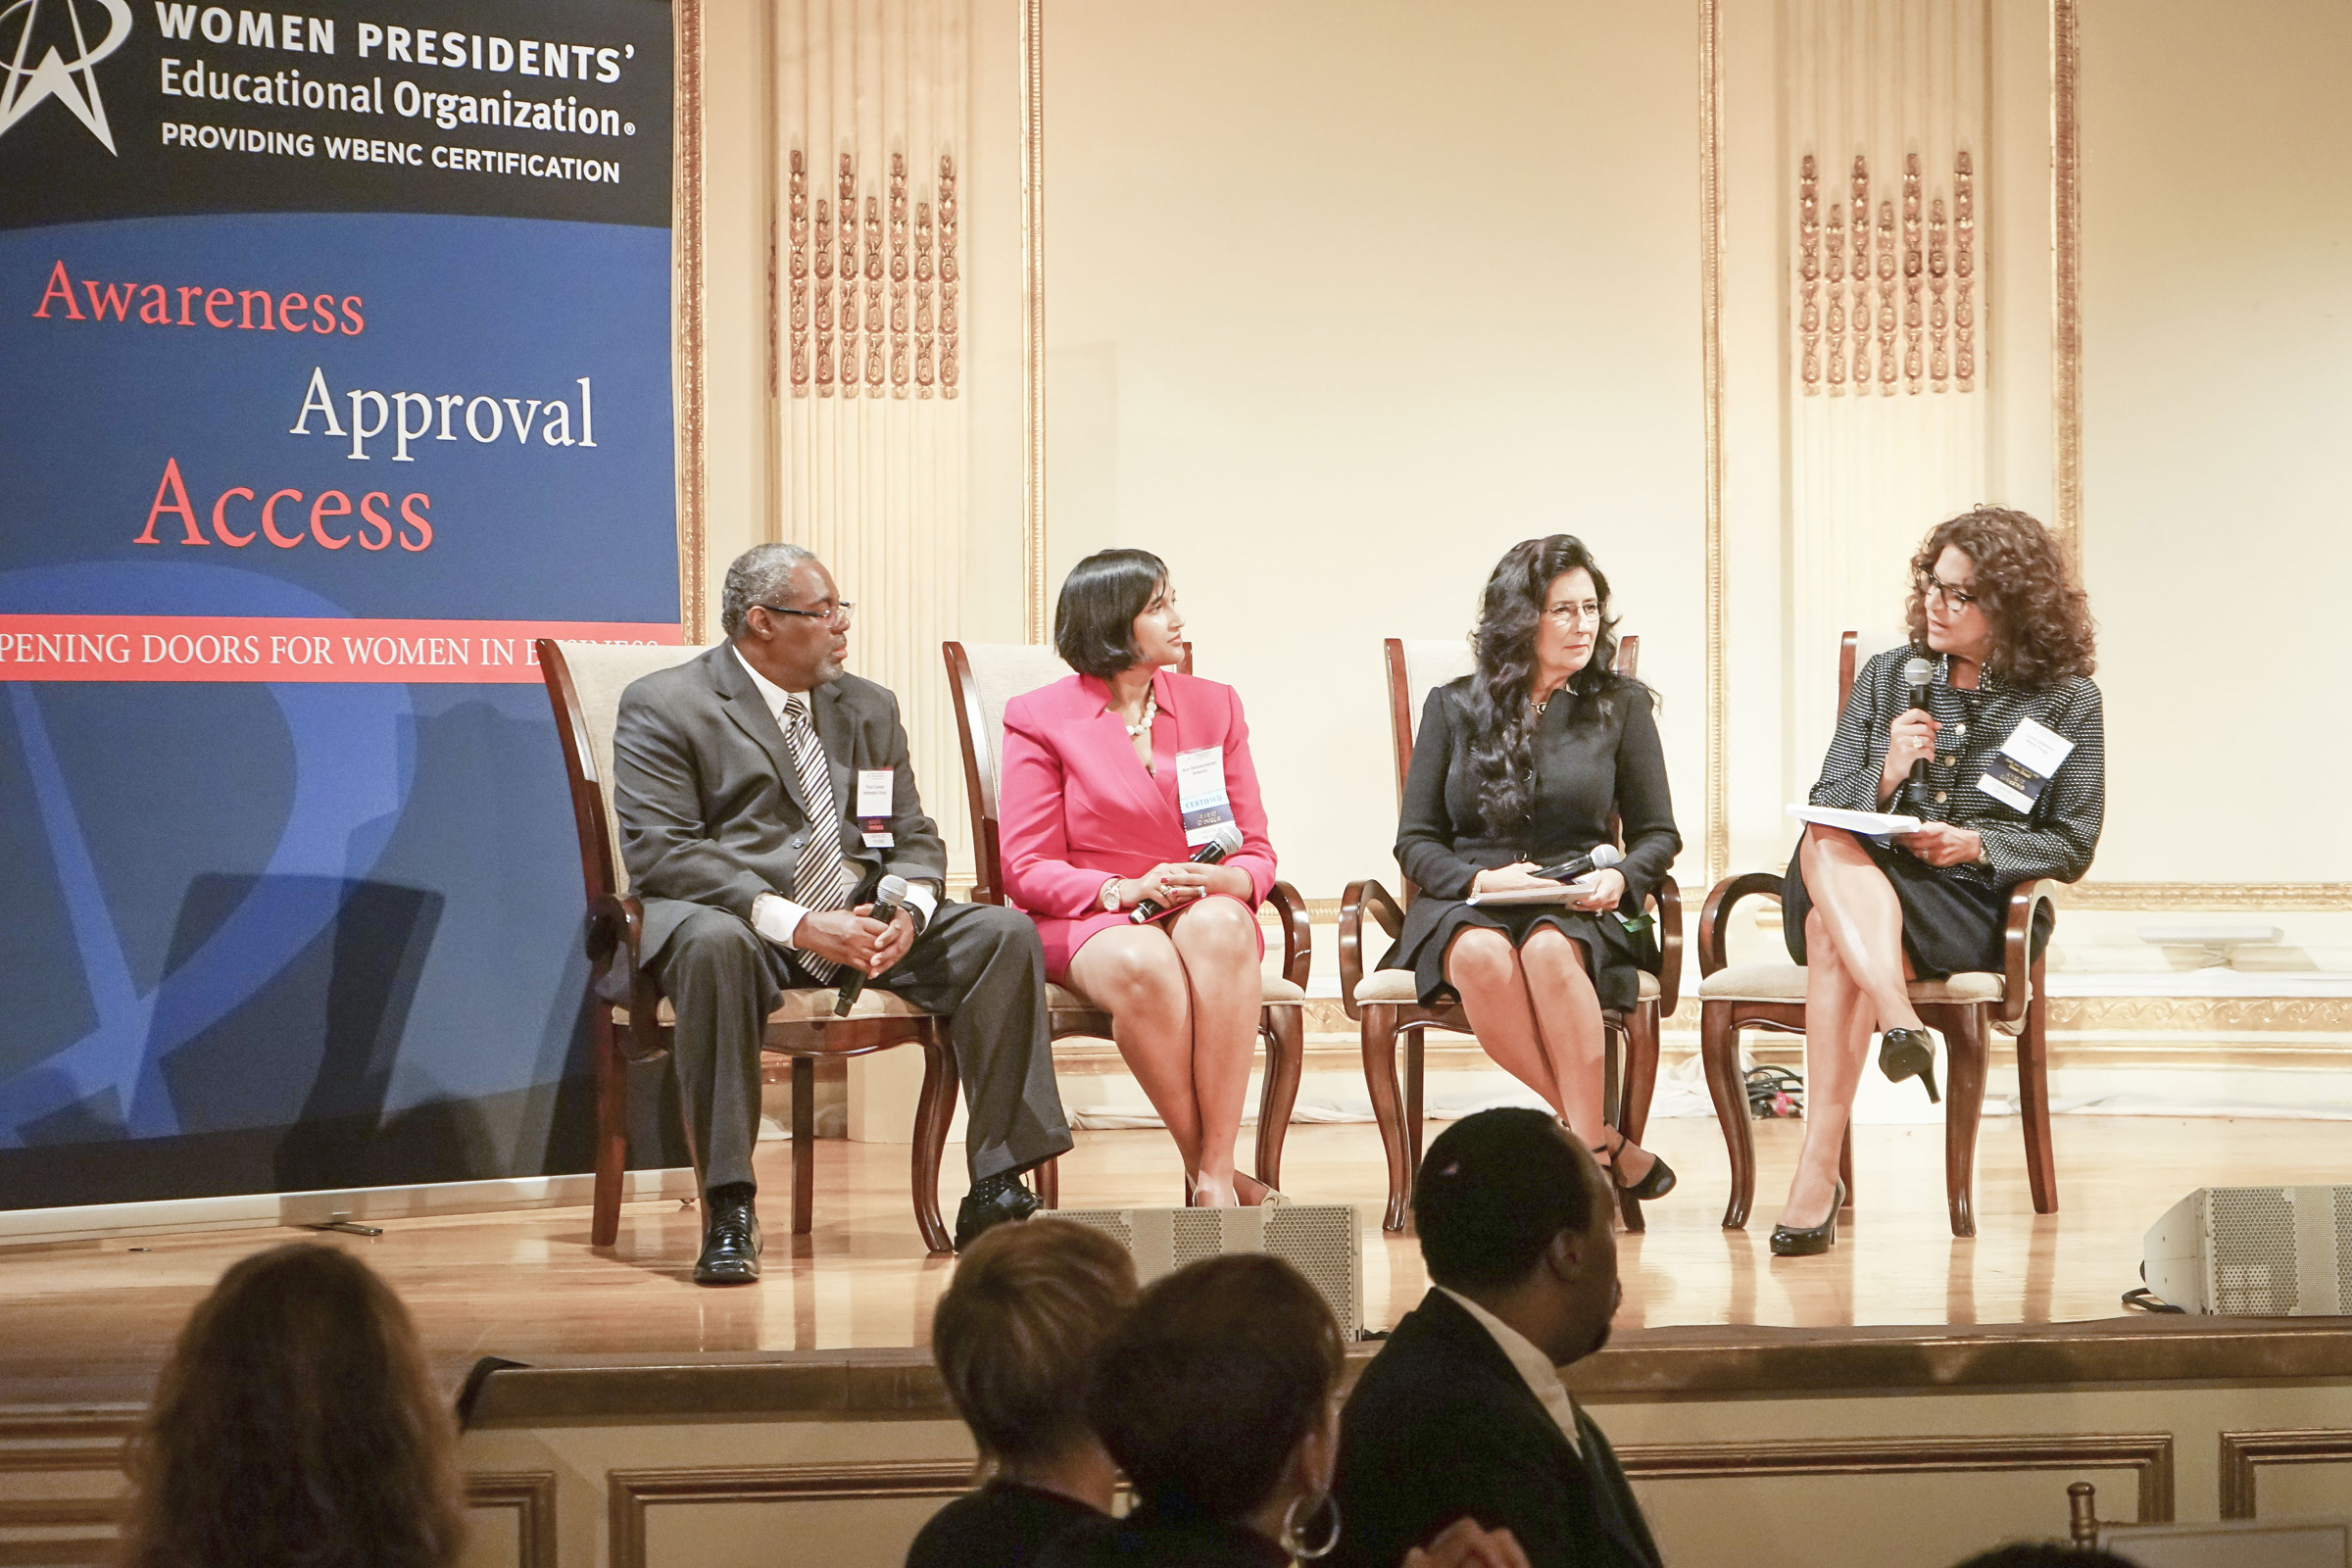 Looking to the future panelists and moderator– Pictured left to right: Floyd Conway, Supplier Diversity Director, Interpublic Group; Ann Ramakumaran, Founder and CEO, Ampcus; Lynn A. Boccio, Esq., Vice President, Strategic Business & Diversity Relations, Avis Budget Group, Inc.; Lucia DiNapoli Gibbons, Head of Eastern Business Banking, Wells Fargo (moderator)